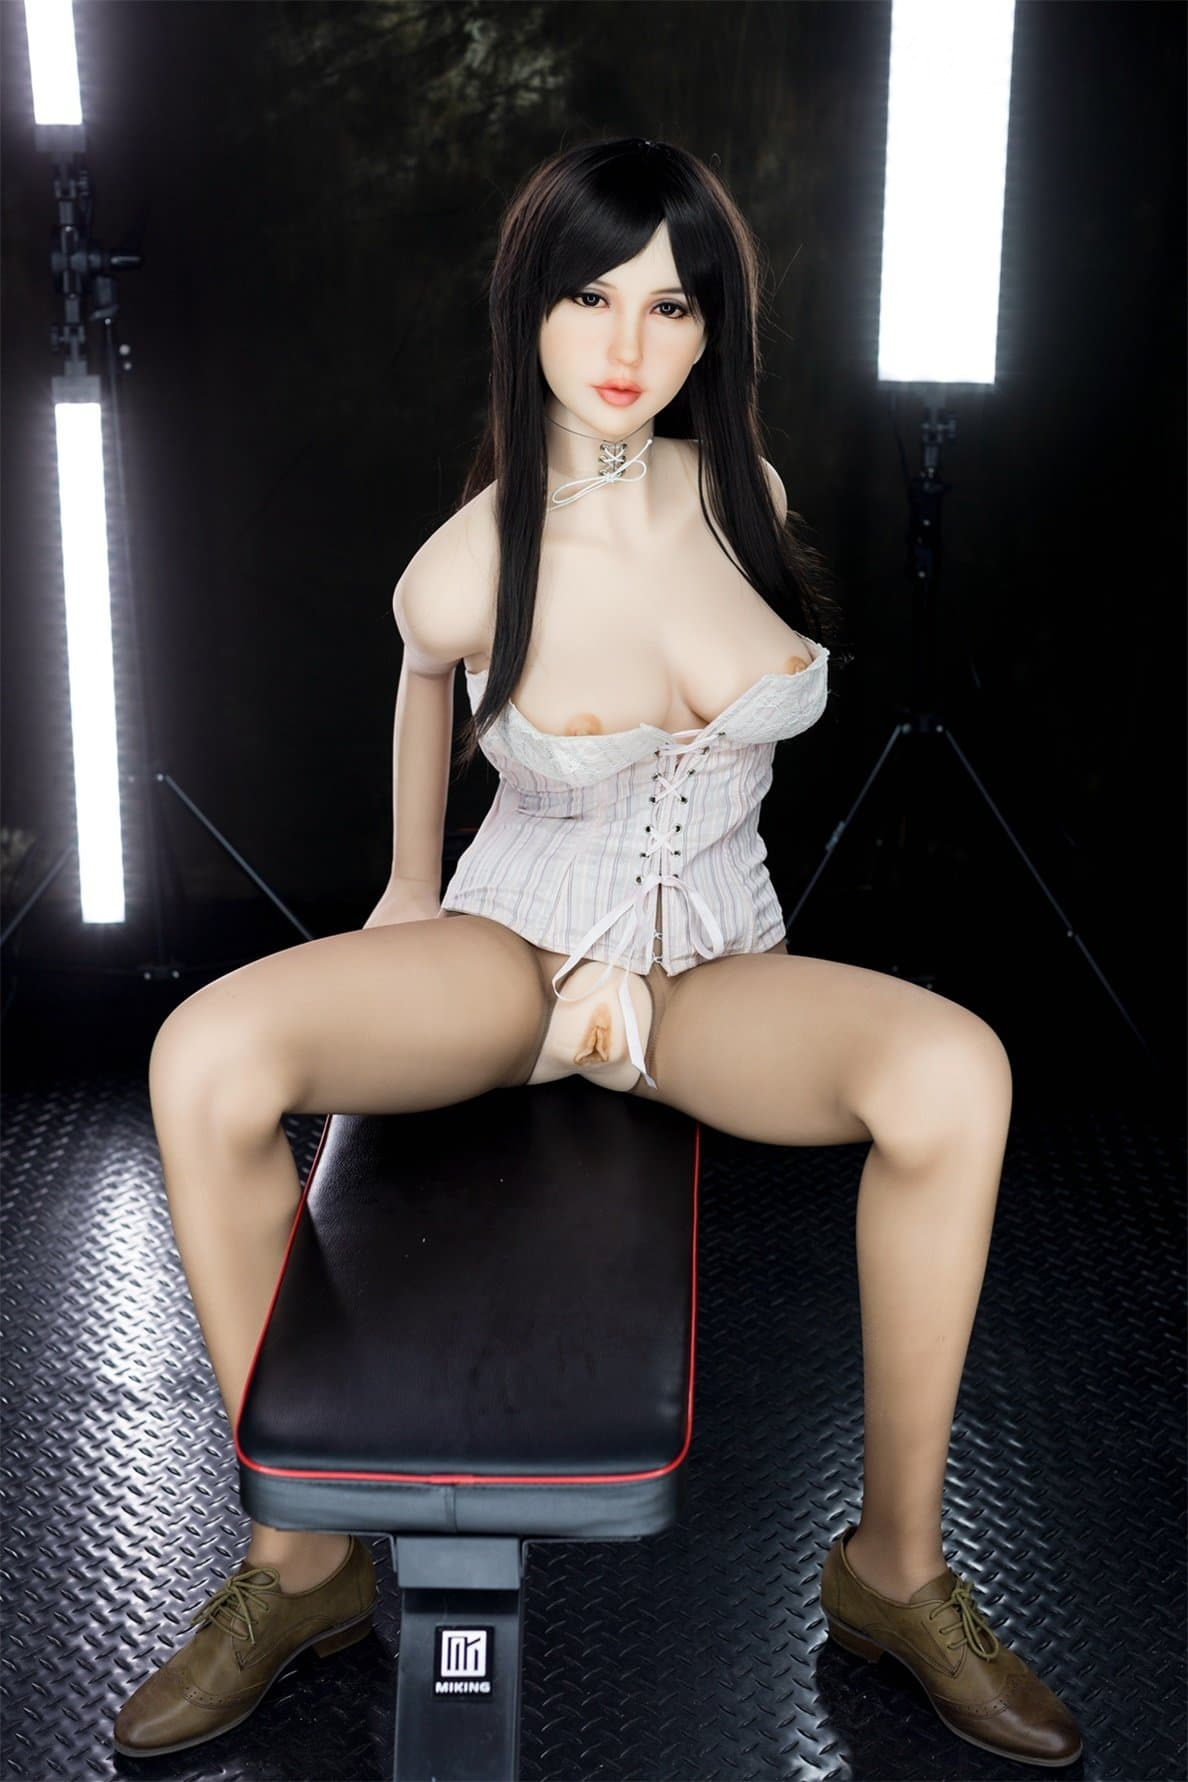 chyna 163cm black hair japanese big boobs athletic tpe wm sex doll(9)